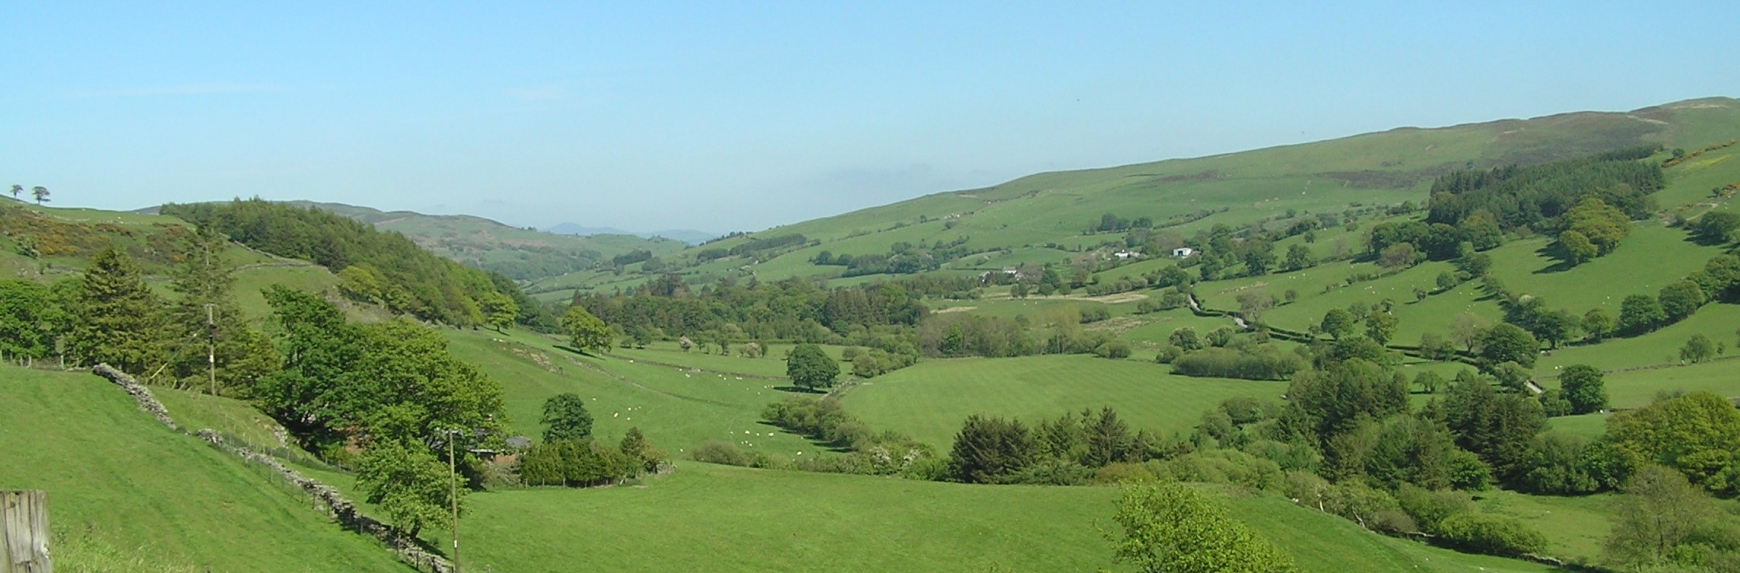 Countryside hills with fields